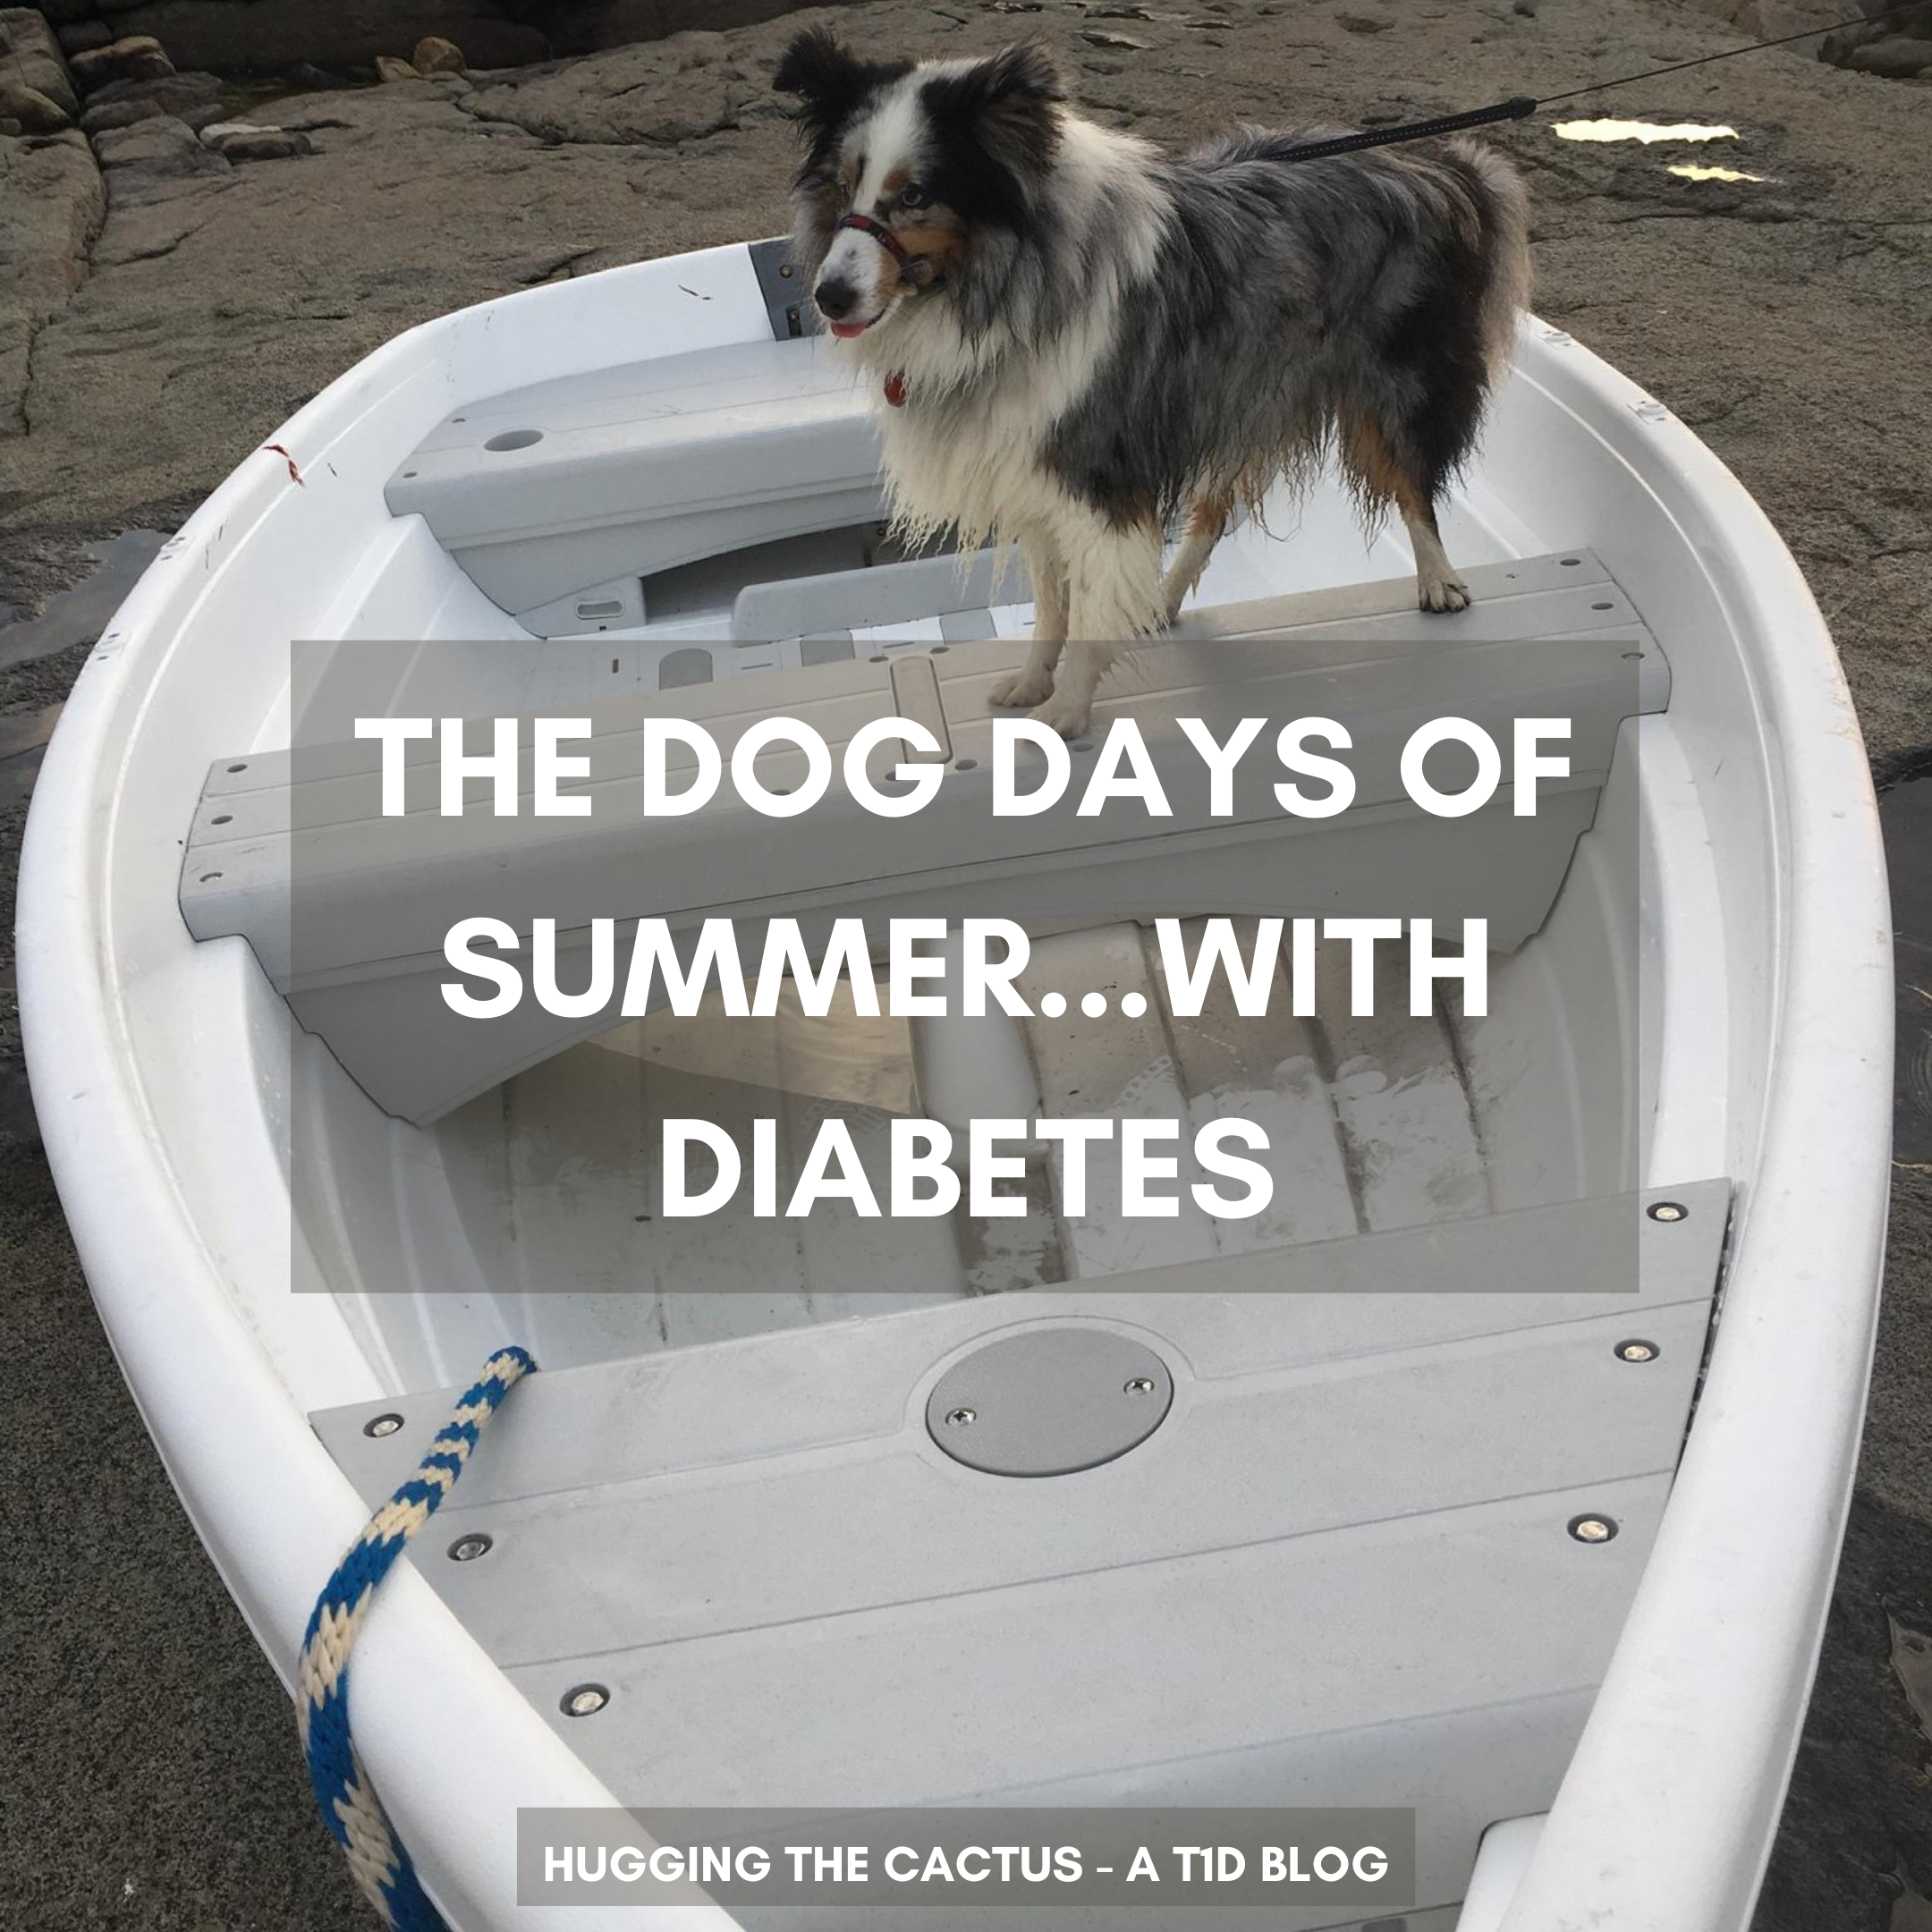 The Dog Days of Summer...with Diabetes